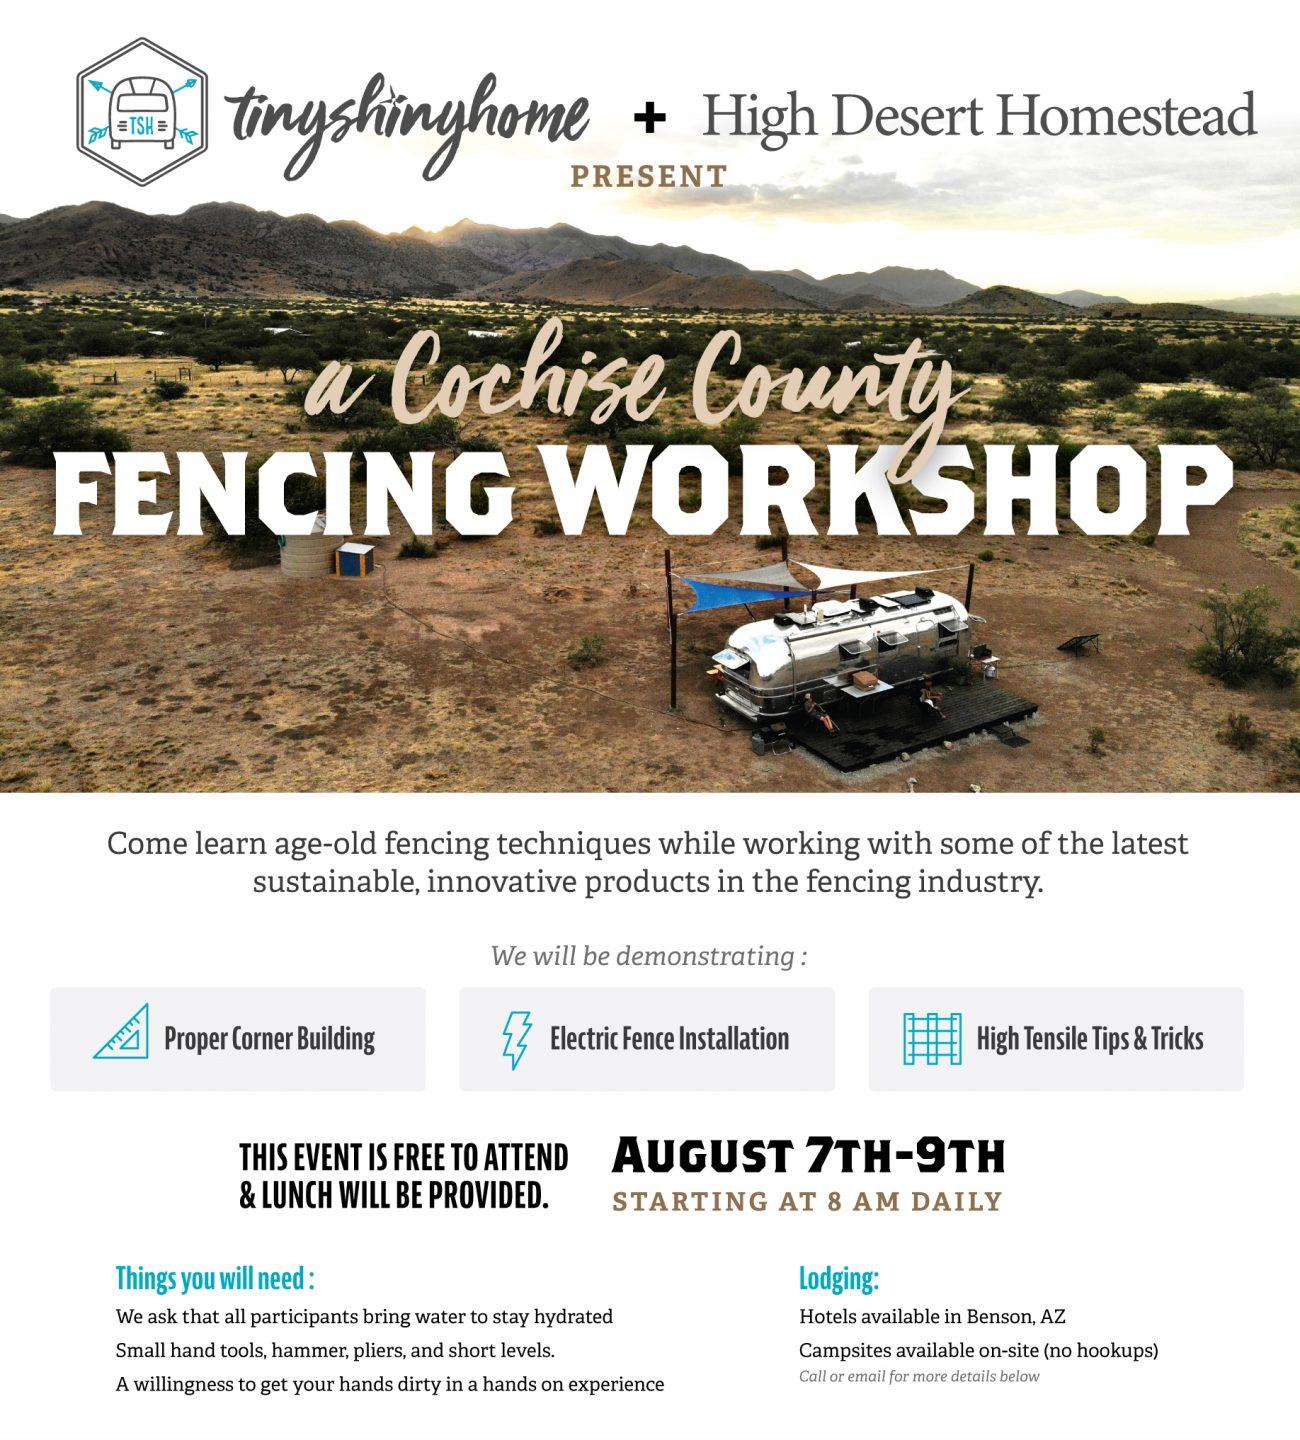 Fencing Workshop Flyer